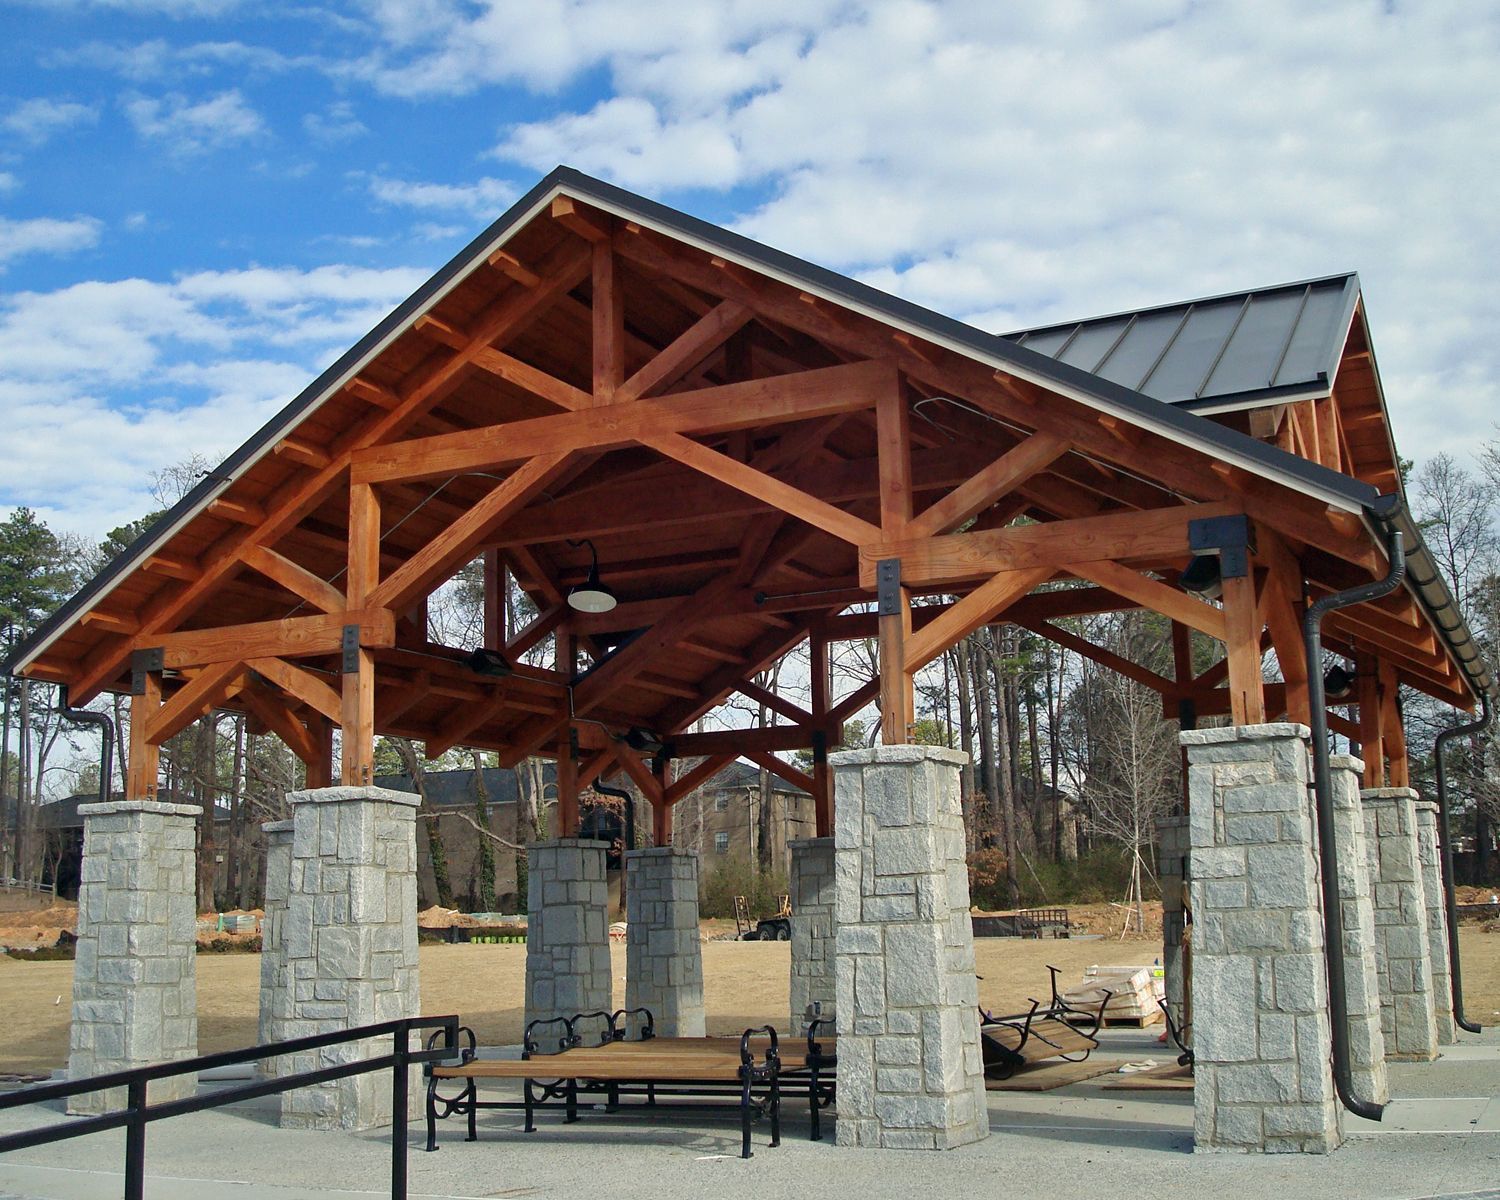 Timber Frame Pavilion. Cedar Timbers And Trusses With